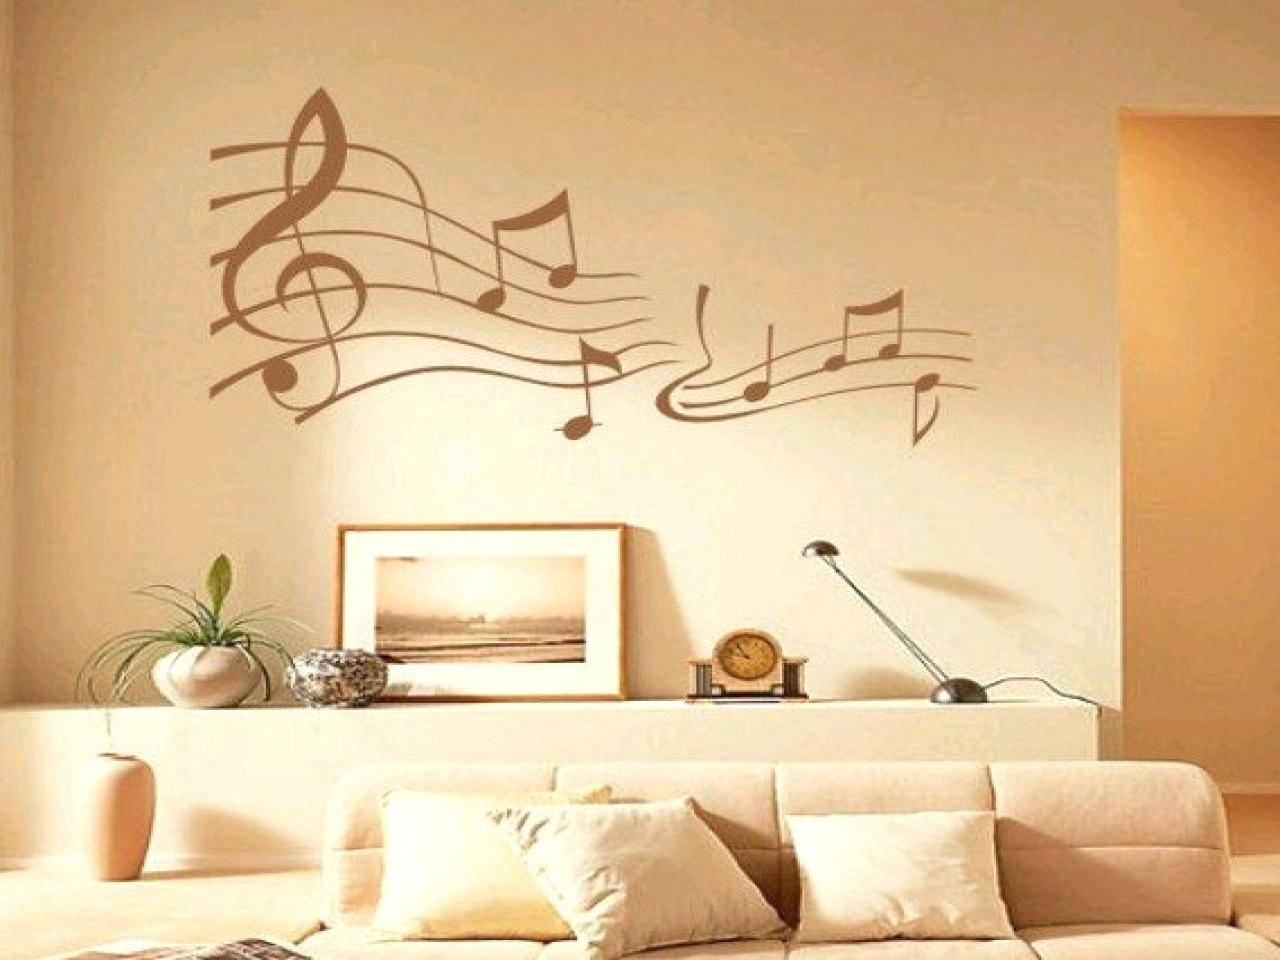 Showing Gallery of Music Themed Wall Art (View 22 of 25 Photos)